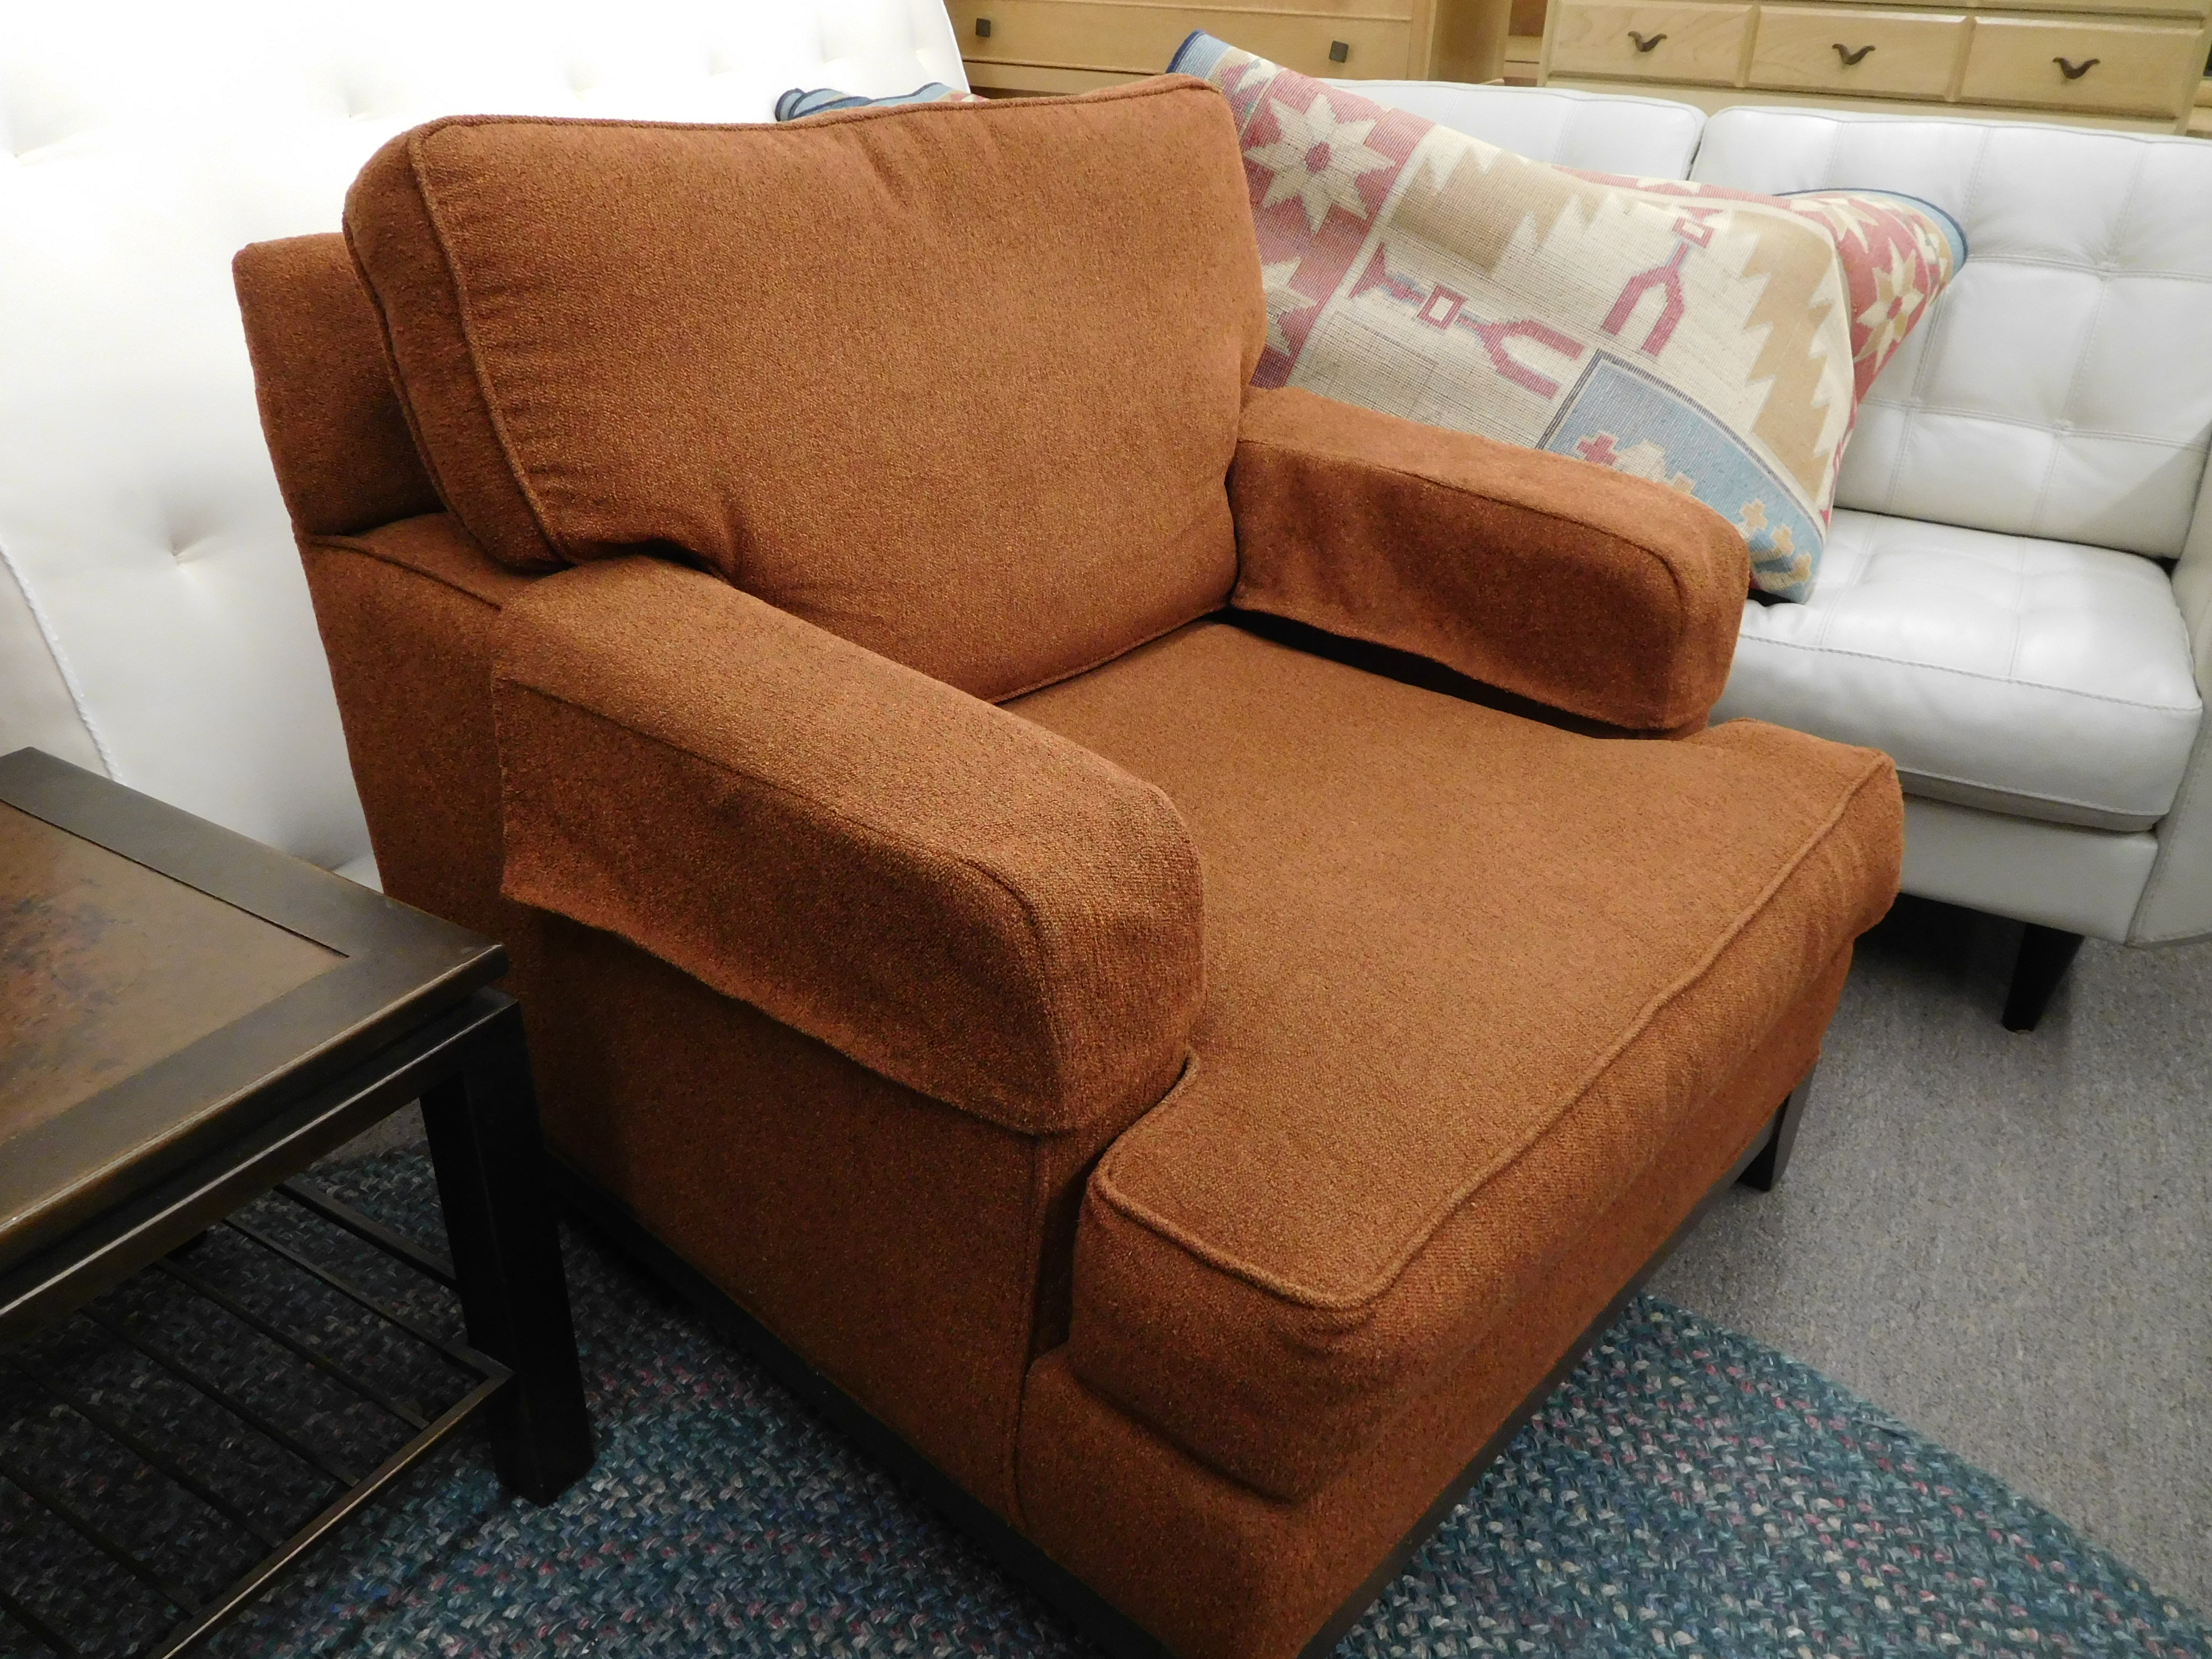 Apricot Upholstered Club Chair by Ethan Allen